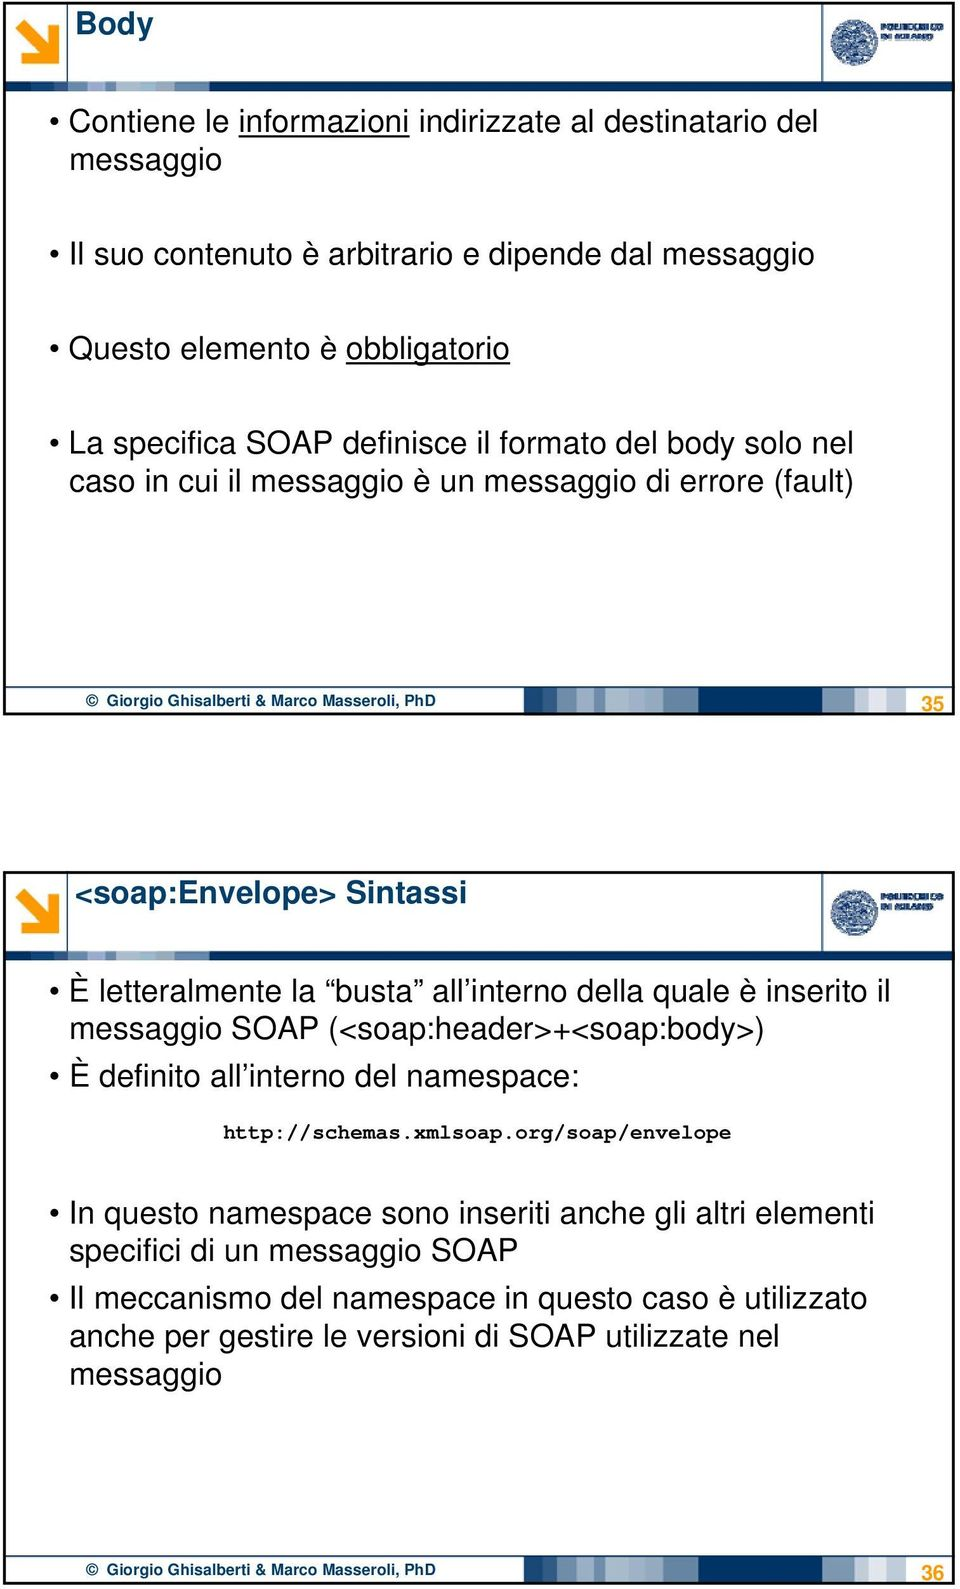 è inserito il messaggio SOAP (<soap:header>+<soap:body>) È definito all interno del namespace: http://schemas.xmlsoap.